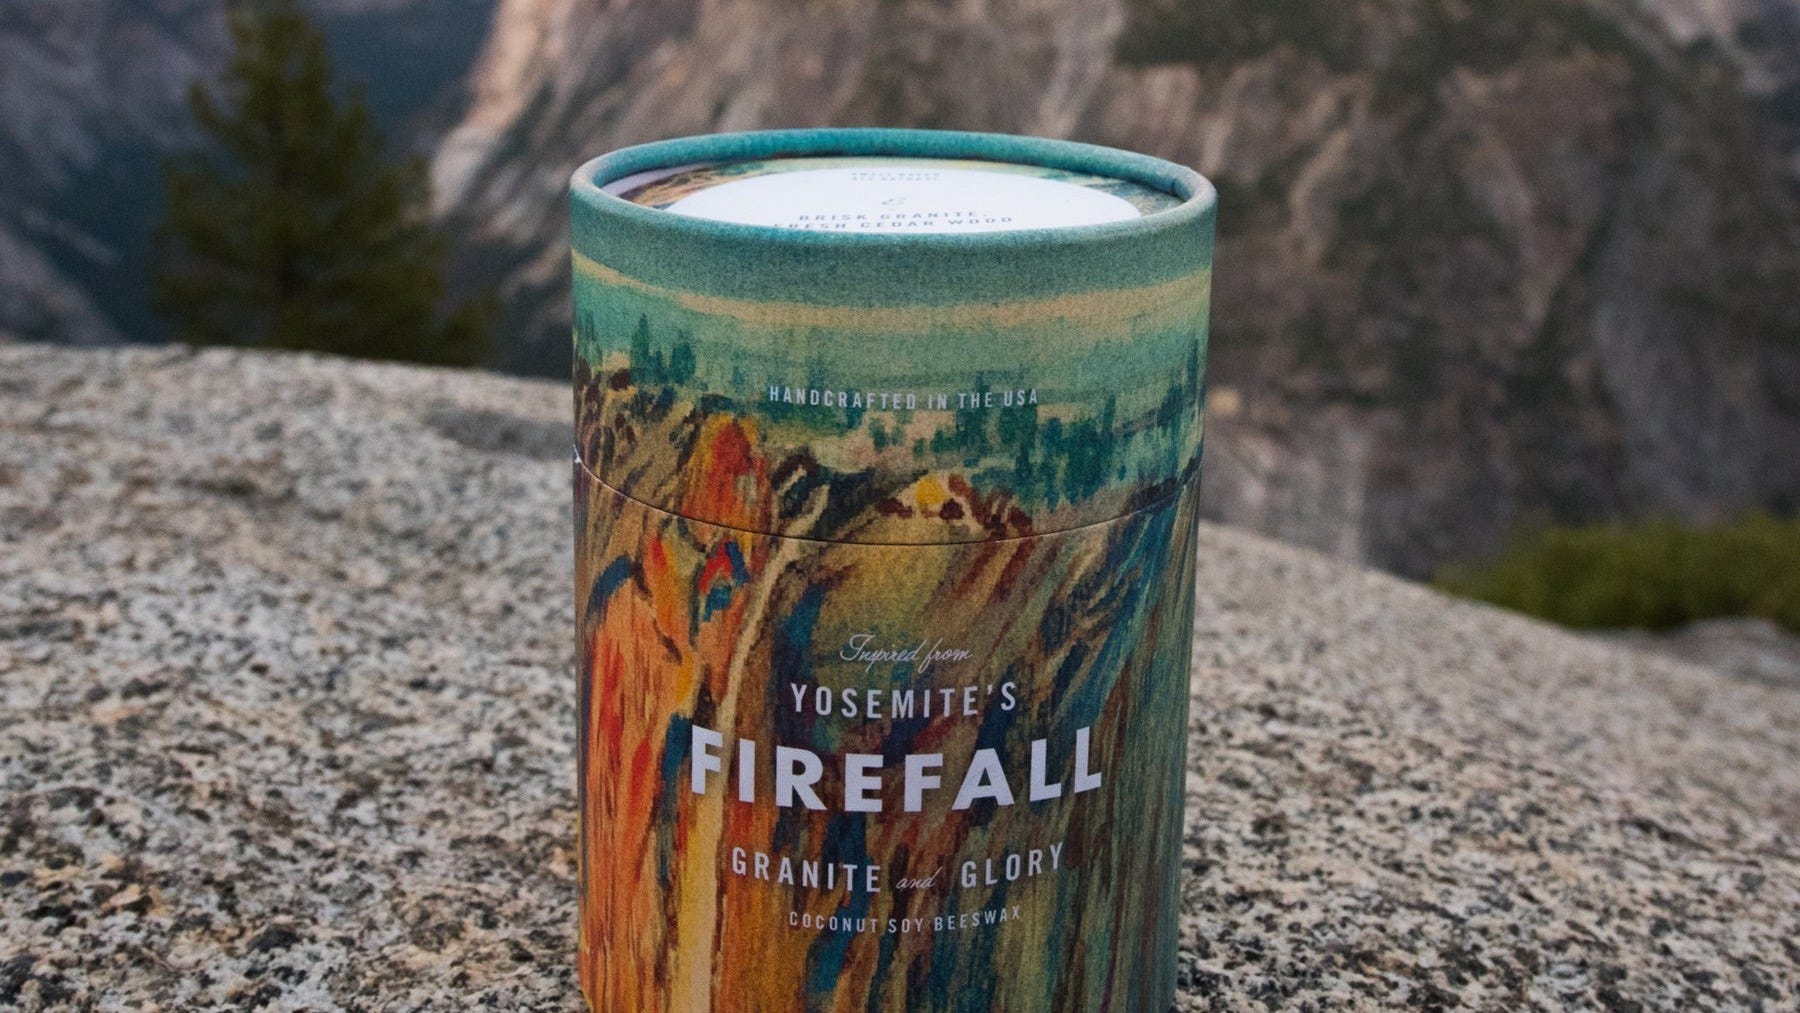 A candle in cardboard tube packaging with a scene of mountains in the distance.